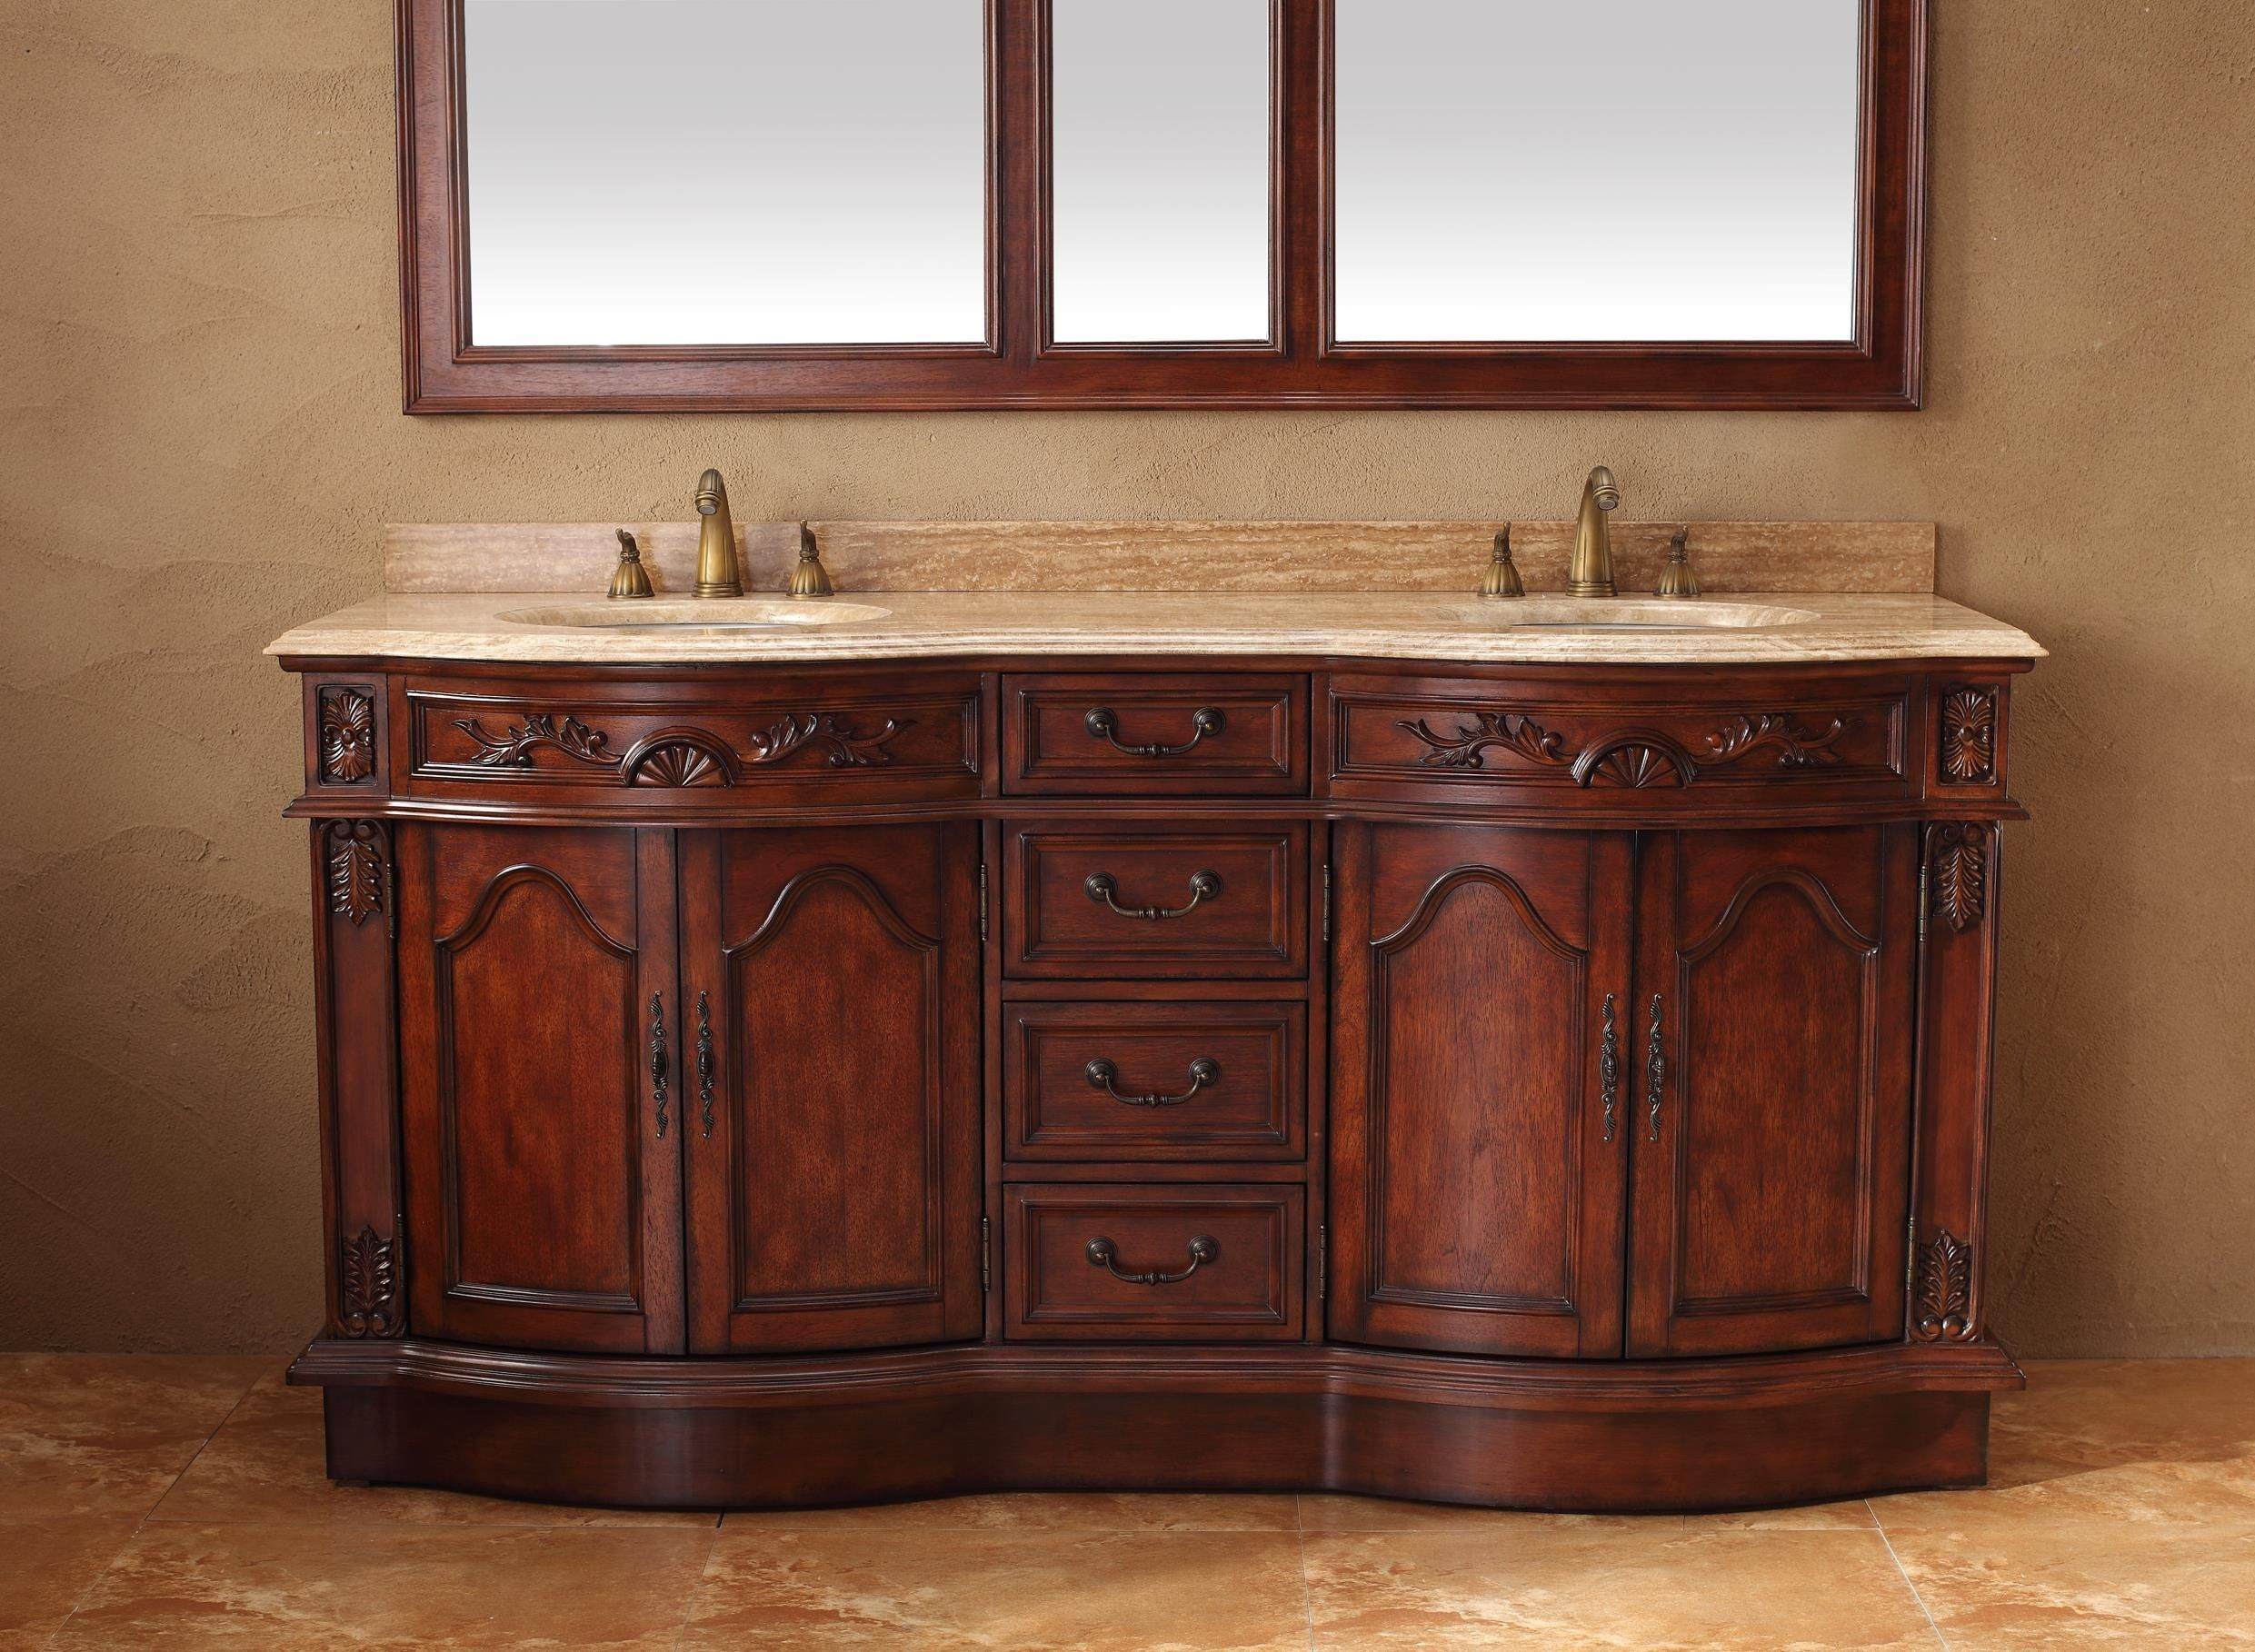 Tuscany 72 Double Sink Bathroom Vanity Cabinet Cherry Finish The Tuscany Collection I Bathroom Vanity Base Double Sink Bathroom Bathroom Cabinets For Sale